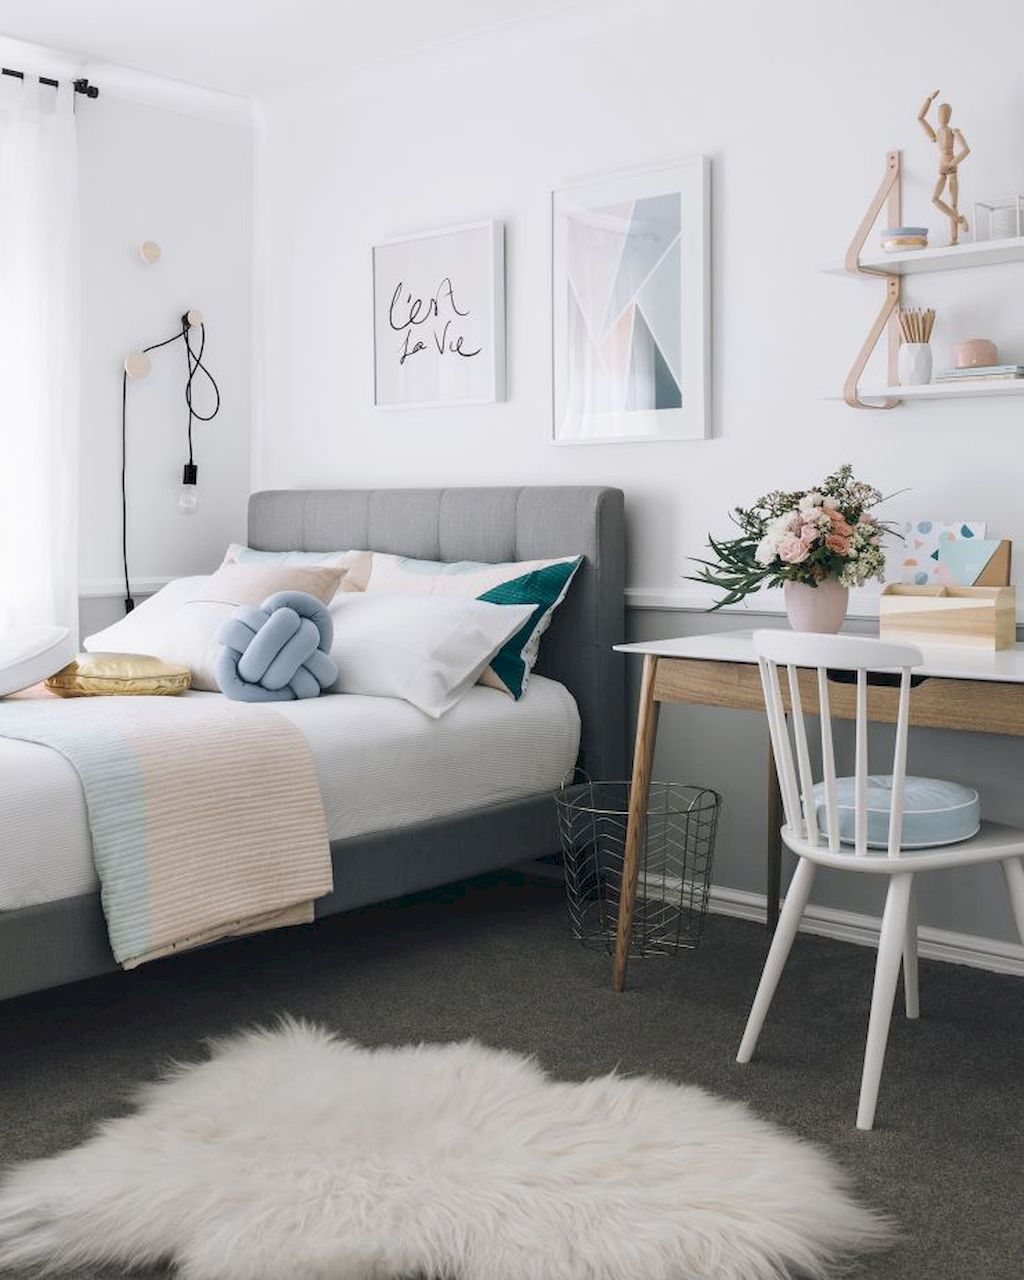 Affordable Bedroom Design With Comfortable Beds and Furniture Part 8